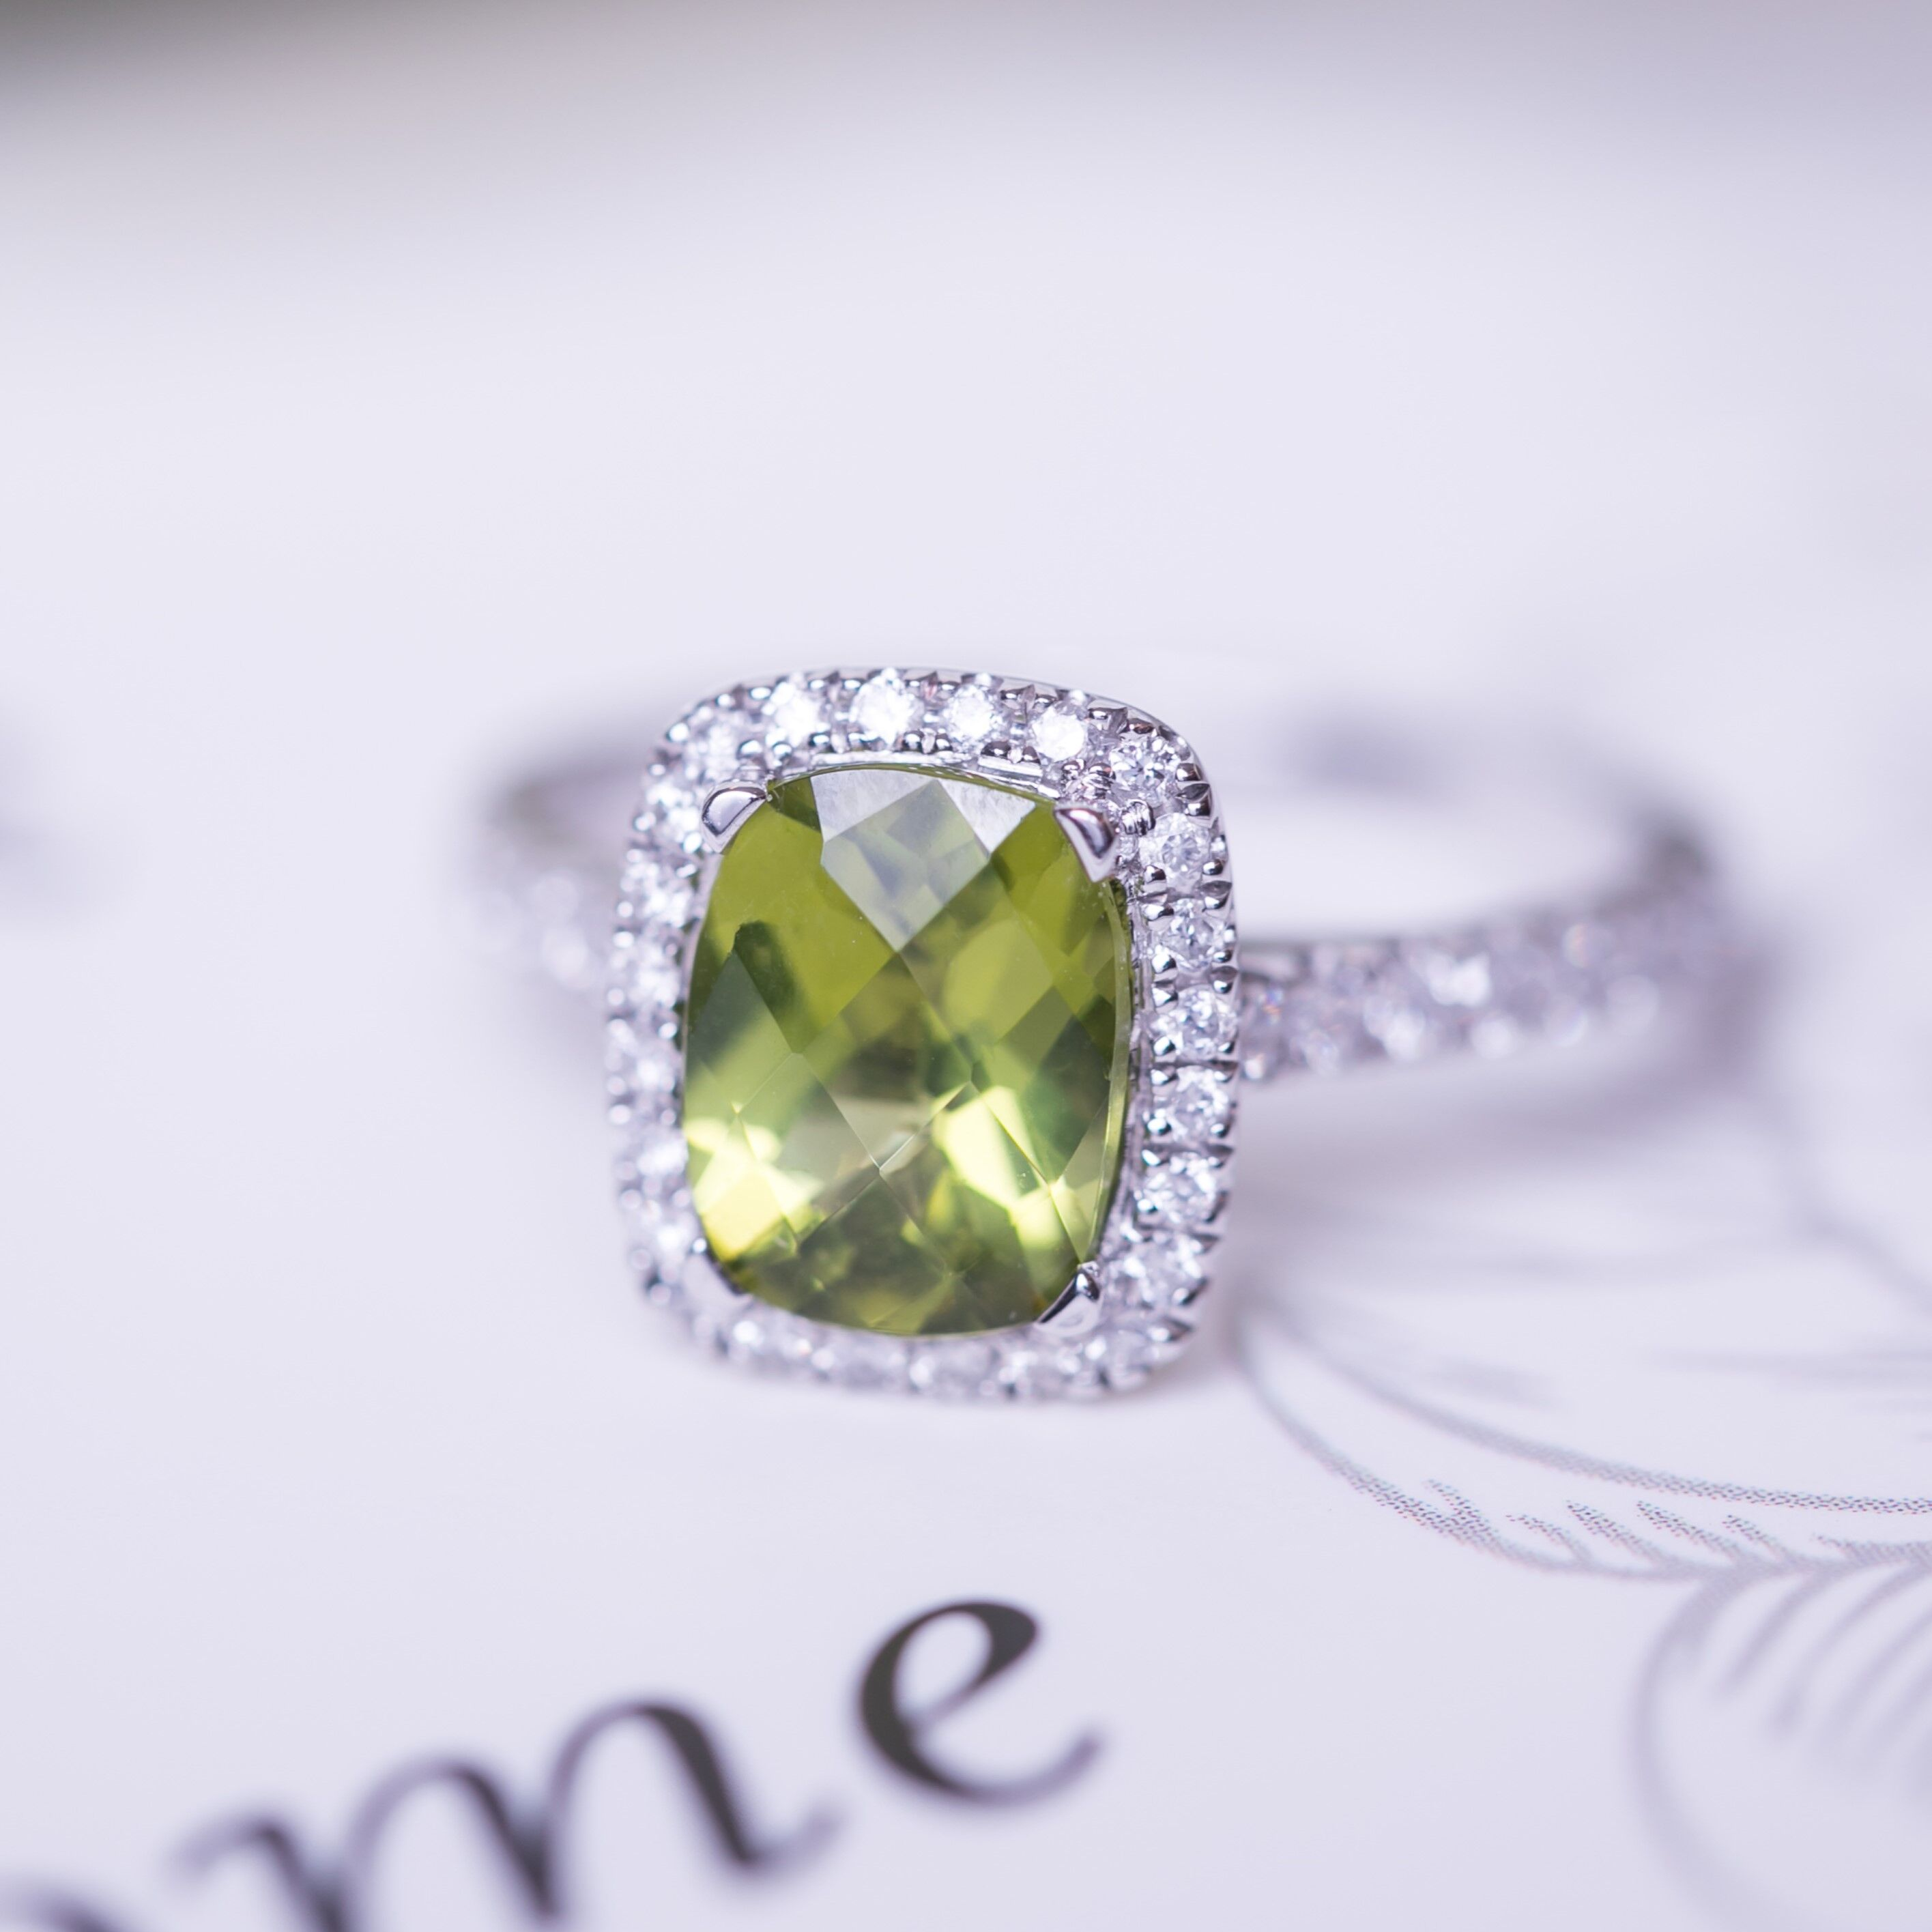 Celebrate August's Birthstone – The Meaningful Peridot